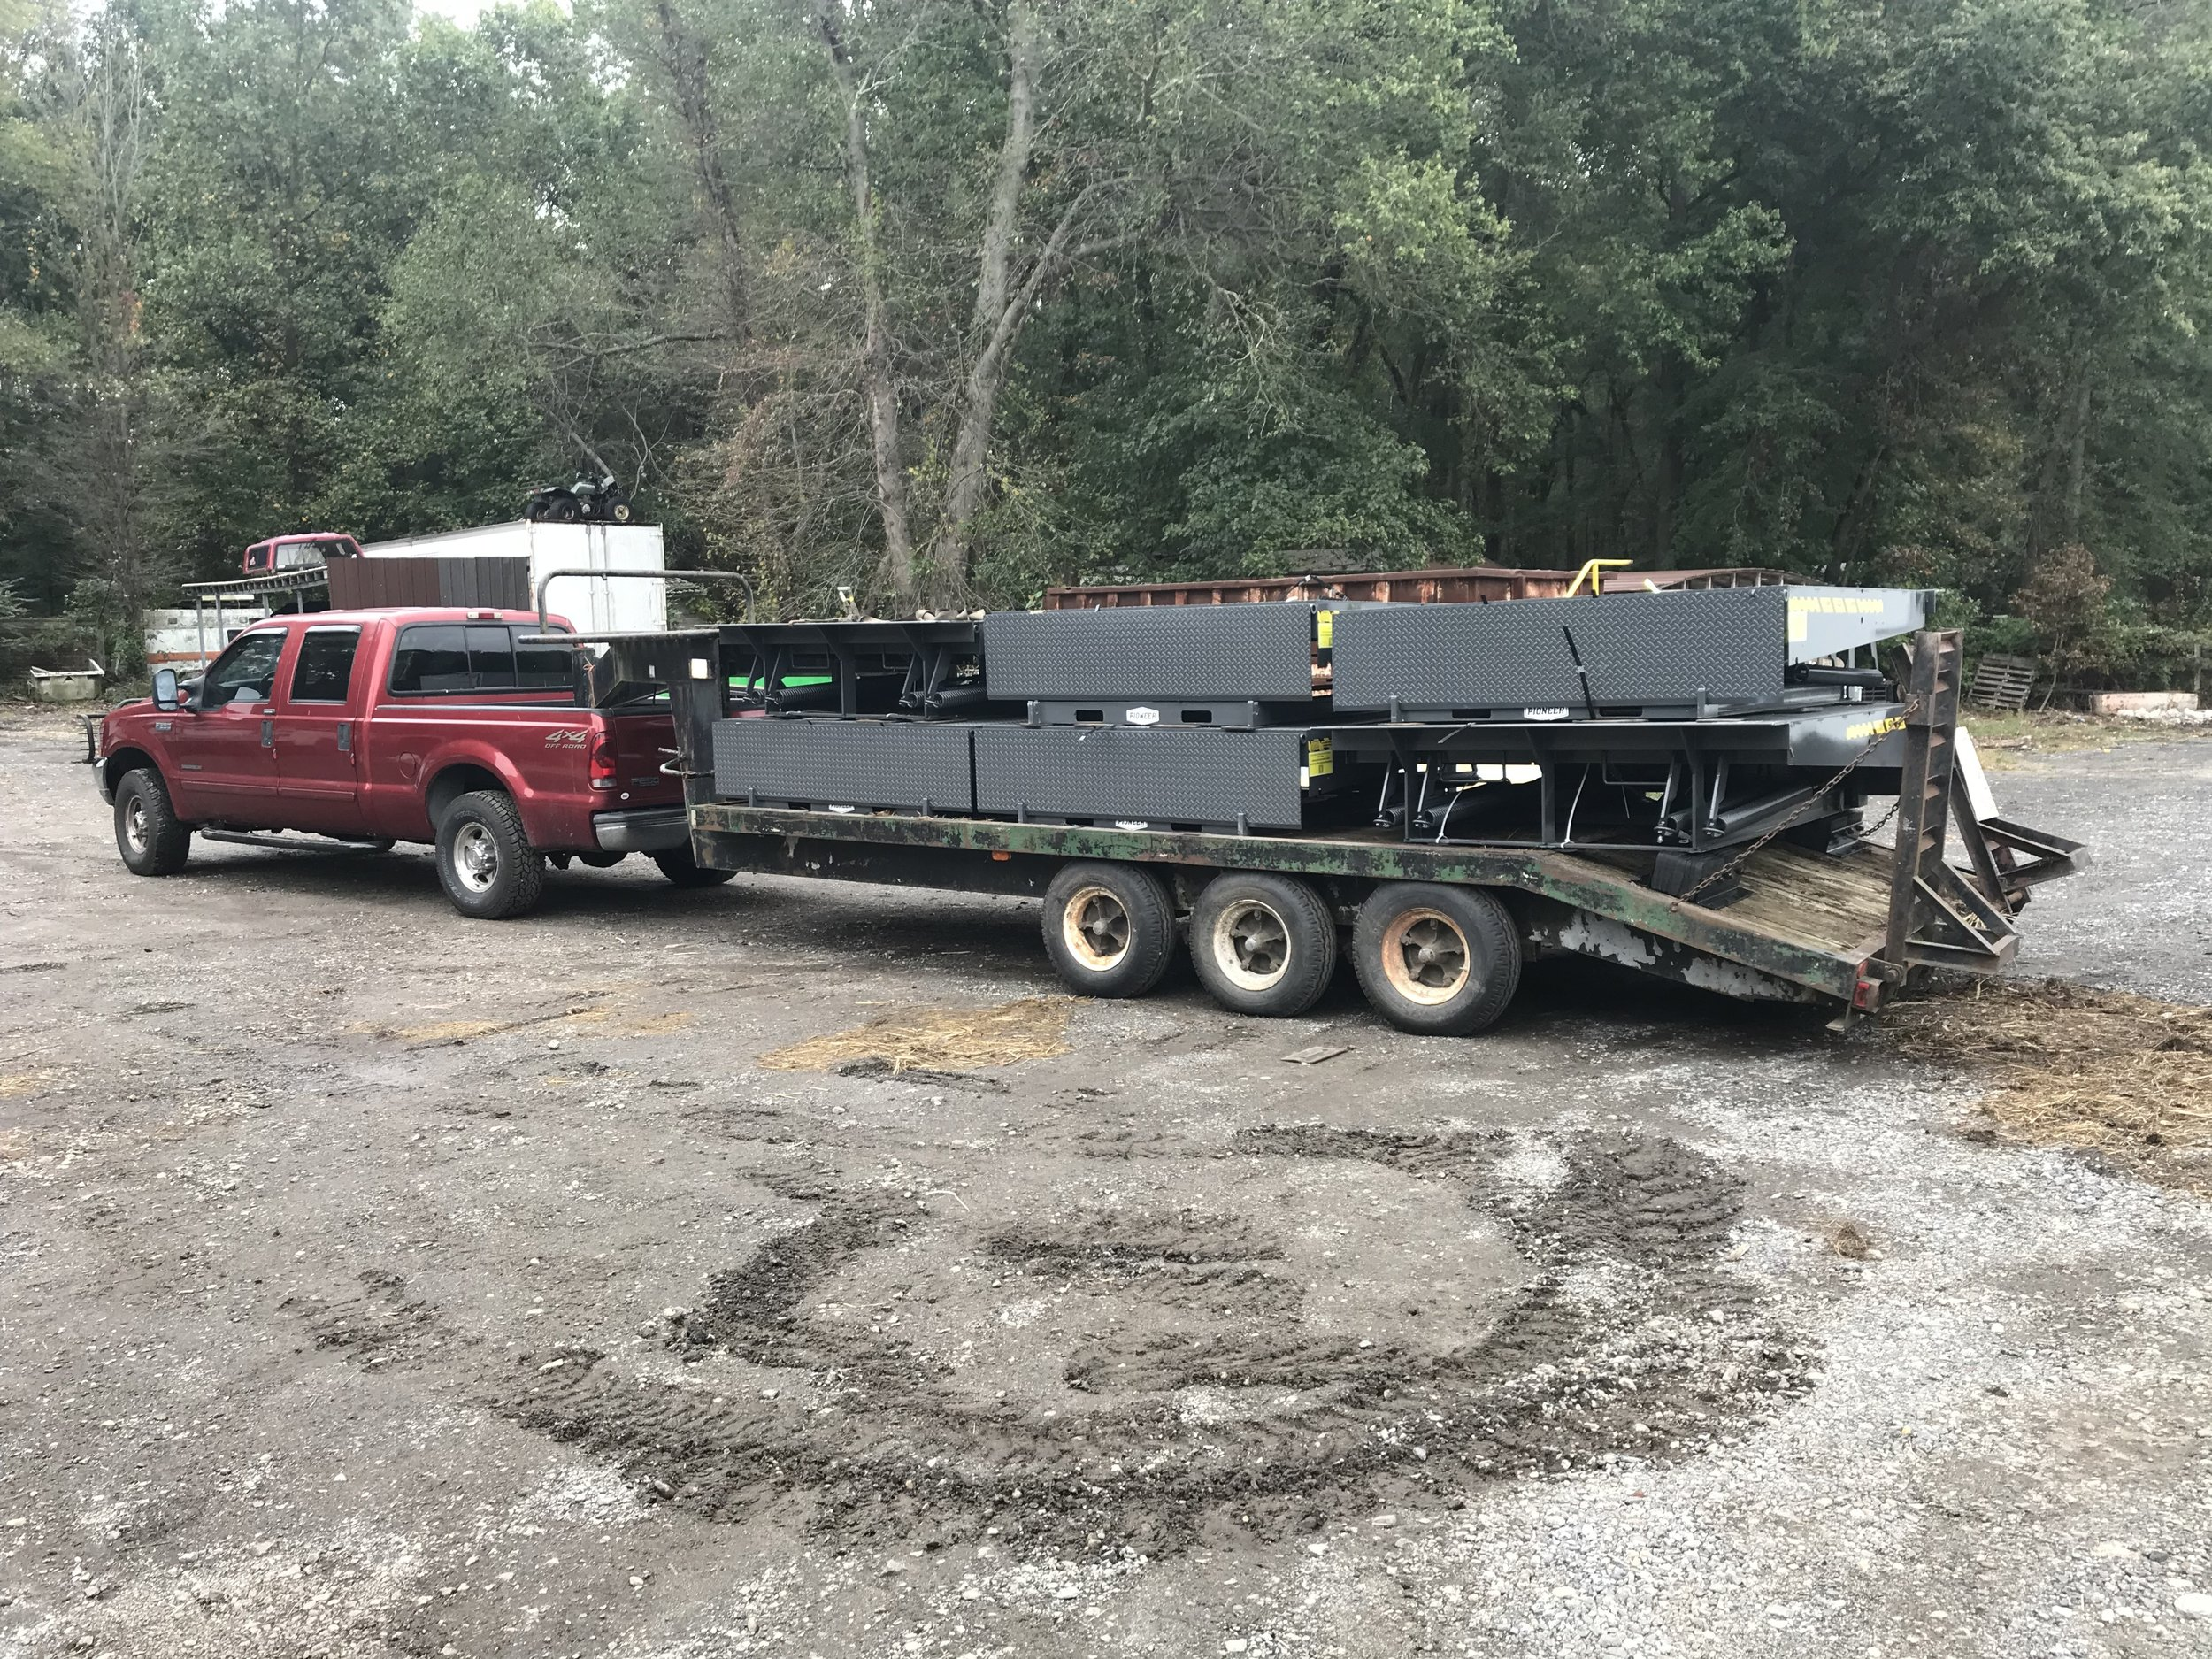 Six dock levelers ready to be delivered to the job site.